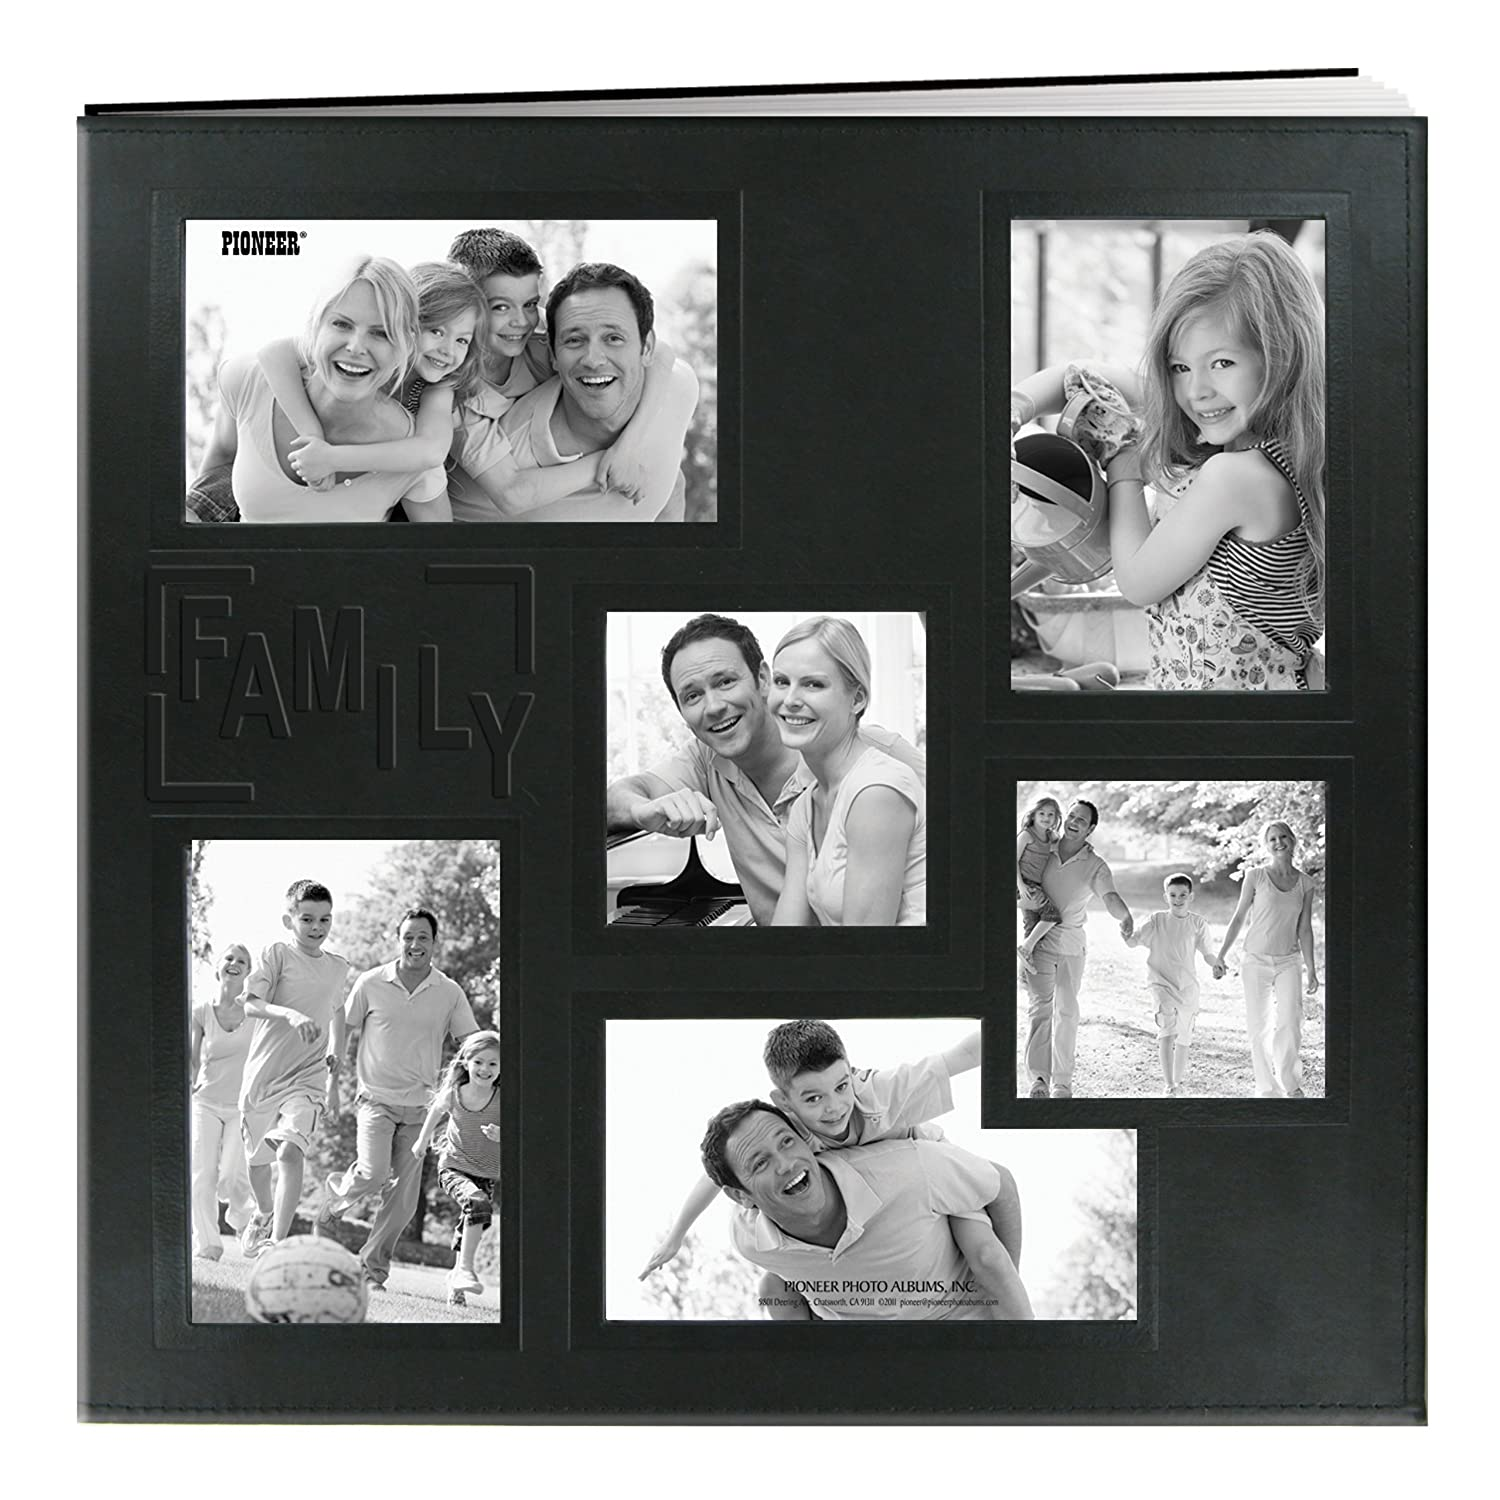 Pioneer Photo Albums 12 x 12-Inch Collage Frame EmbossedBaby Sewn Leatherette Cover Memory Book, Baby Blue MB-10COLBB